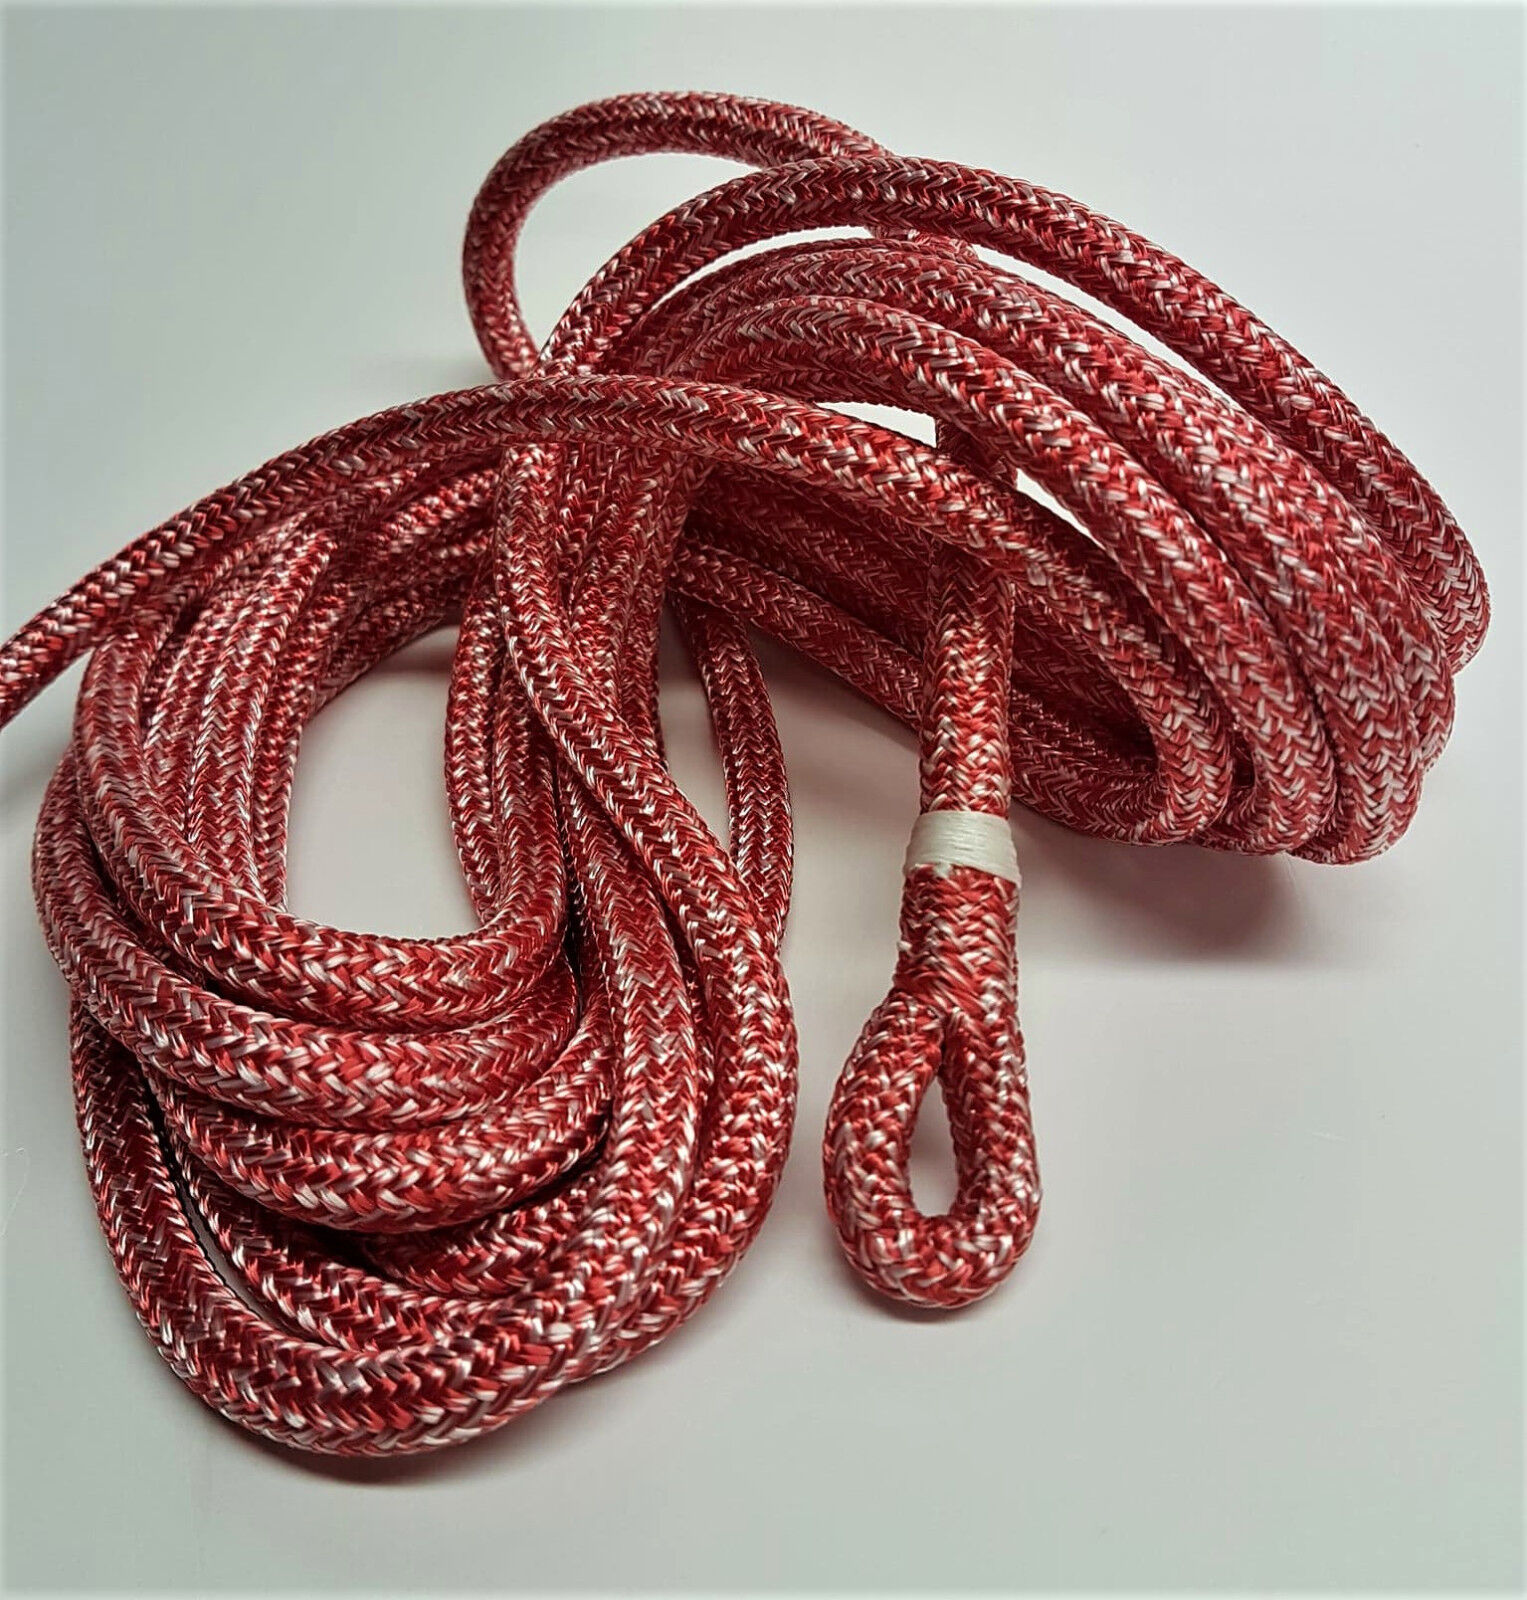 8mm 35mt Spliced Polyester Braid on Braid Pre Stretched Halyard rope Red